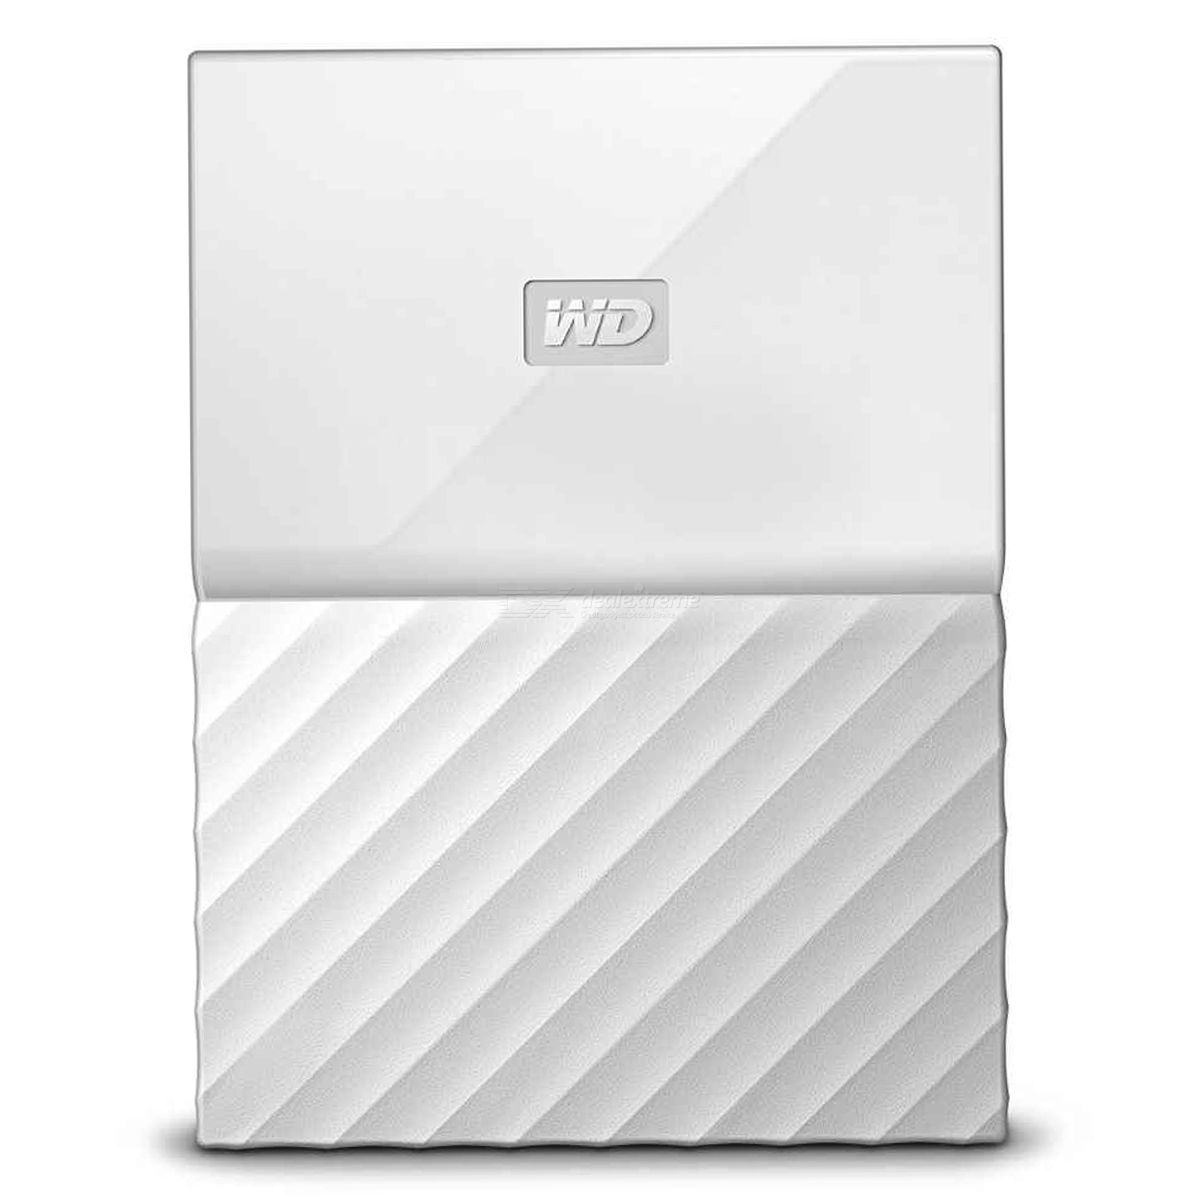 WD My Passport 1TB 2.5quot External Drive USB3.0 WDBYNN0010BWT - White